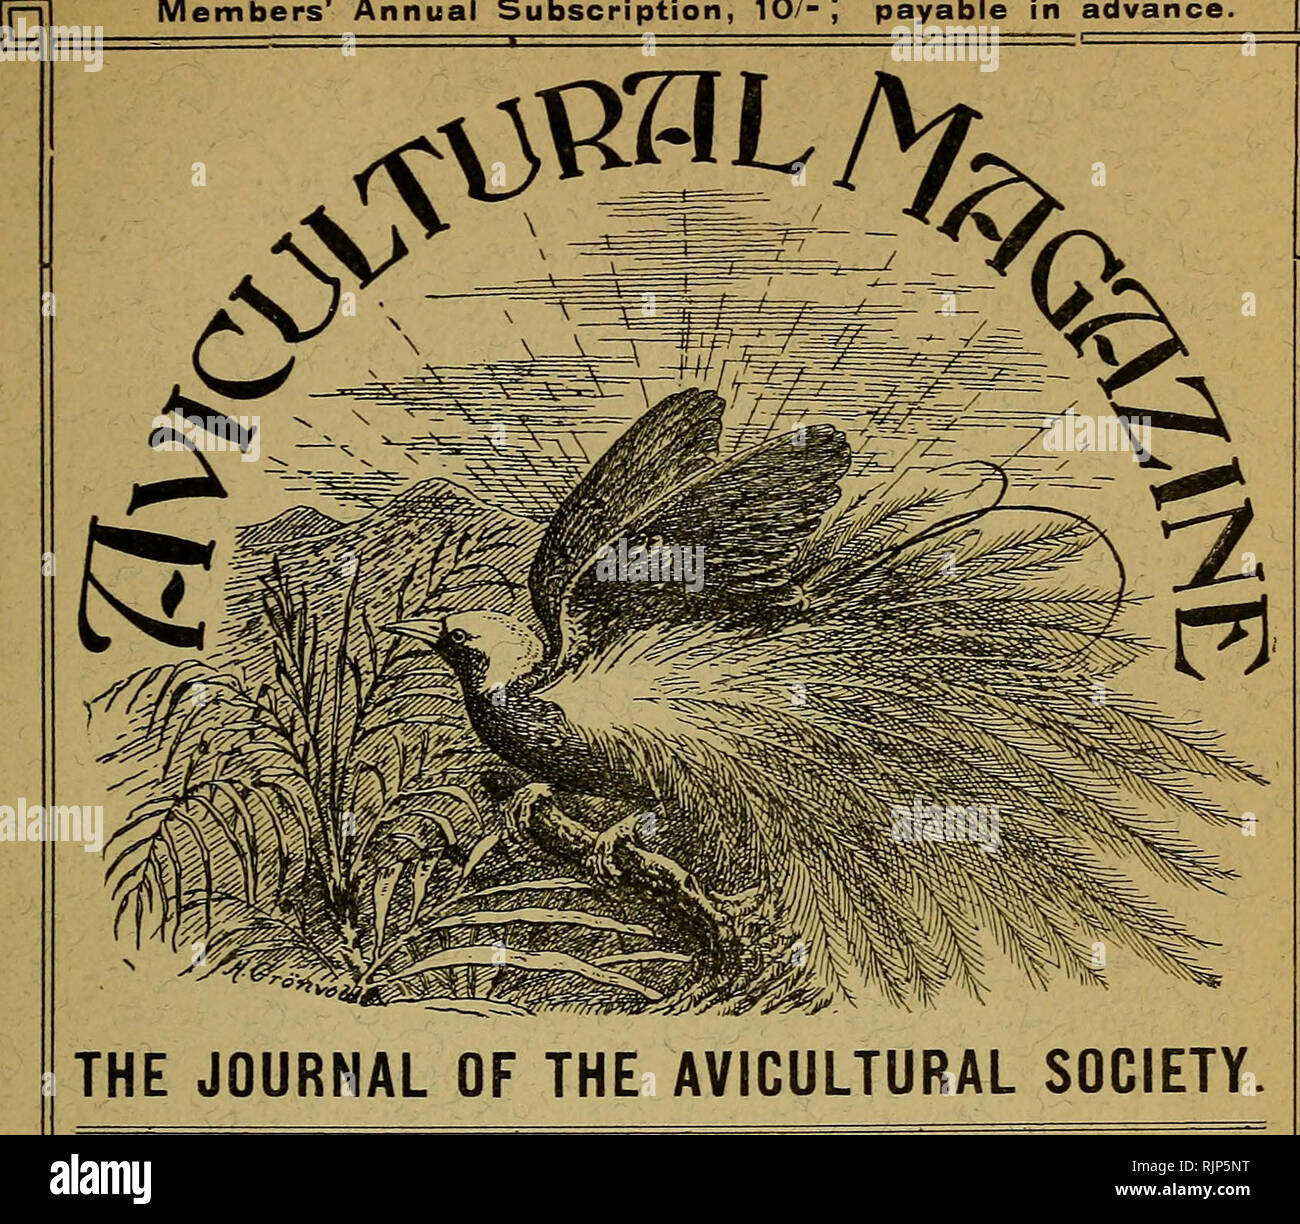 . The Avicultural magazine. Birds; Cage birds. NEW SERIES. Vol. Vi. No. 5. MONTHLY. Price i^- 6«*- MARCH, 1908, Members' Annual Subscription, 10/-| payable in advance. P. .-OCONTENTS.Oj PAGE The Egyptian Plover (ivifk plate), by Captain Stanlky S. Flower .. 139 Notes oil My Birds {continued), by Kosie Aldbrson 144 The Tropical Seed-Finch i49 Red-breasted Starlings, etc., by Dr. A. G. Buti.er ... 151 Notices of New Books, etc. : British Birds i55 January Meeting- of the Council 156 Correspondence: Wood-pigeon Diphtheria, 157; The Recent Crystal Show, 158; The Hedgs-Accentor, 158; Breeding Briti - Stock Image